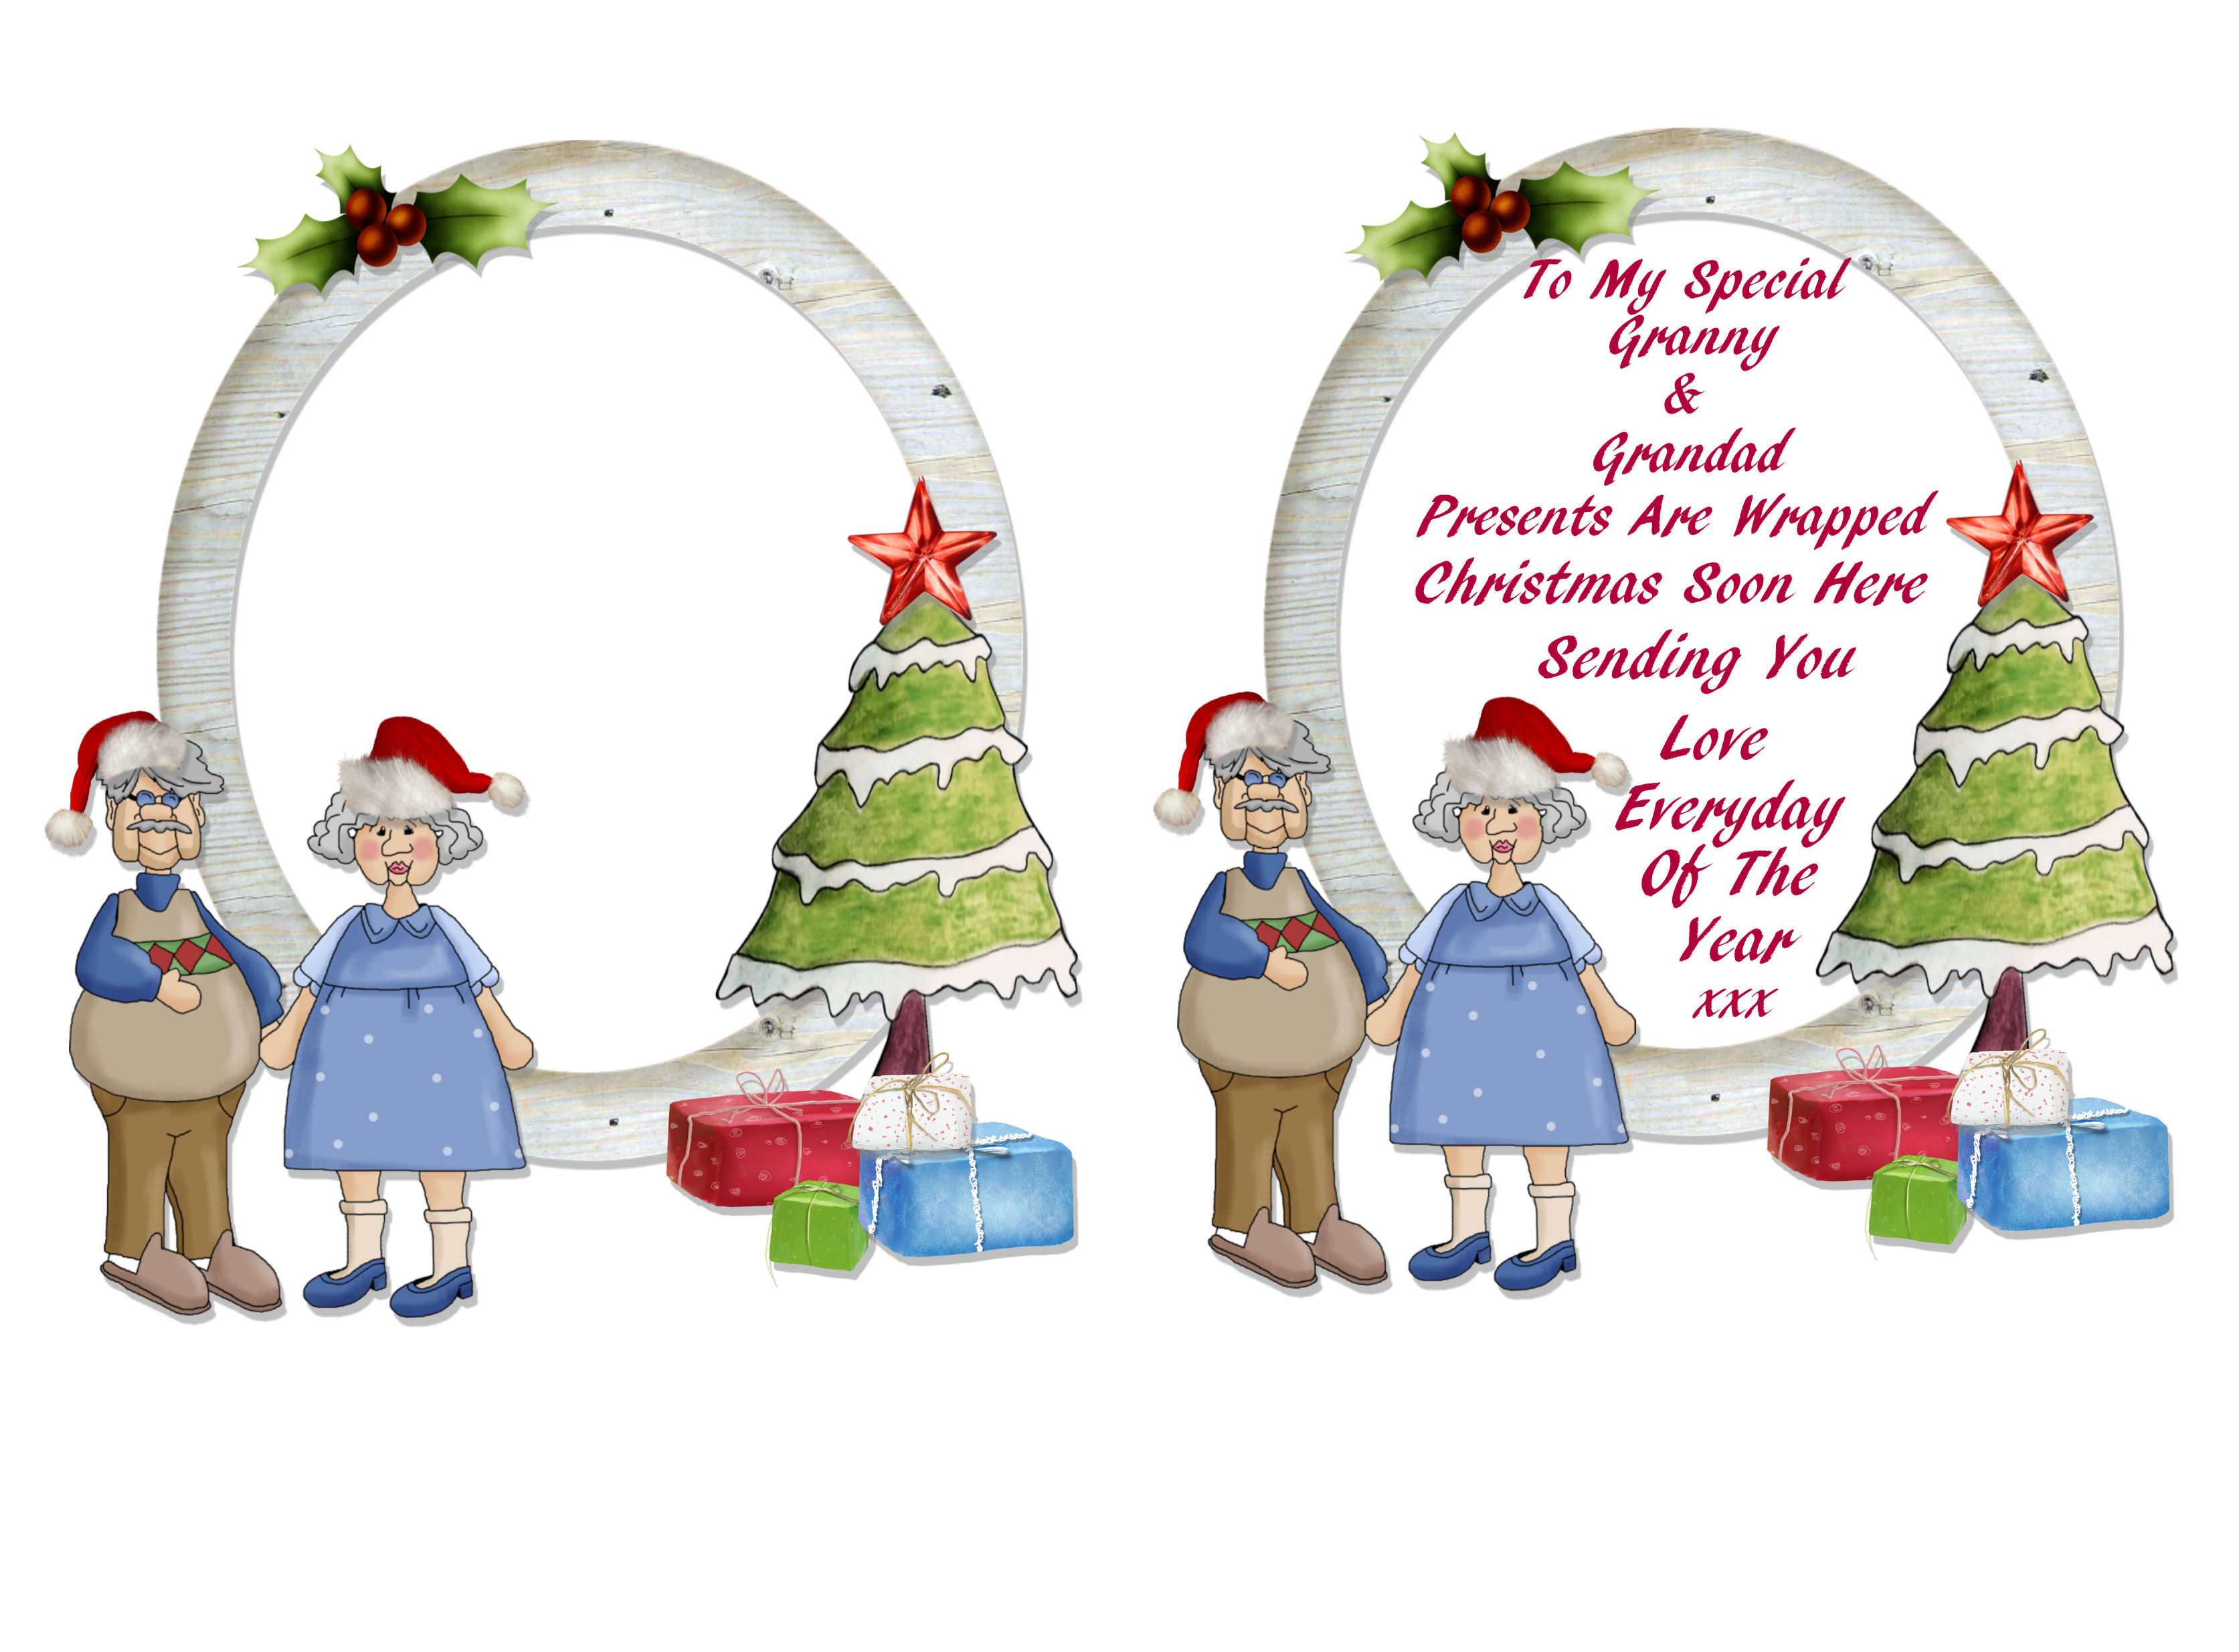 christmas card print out verses grandparents - Christmas Card Print Out